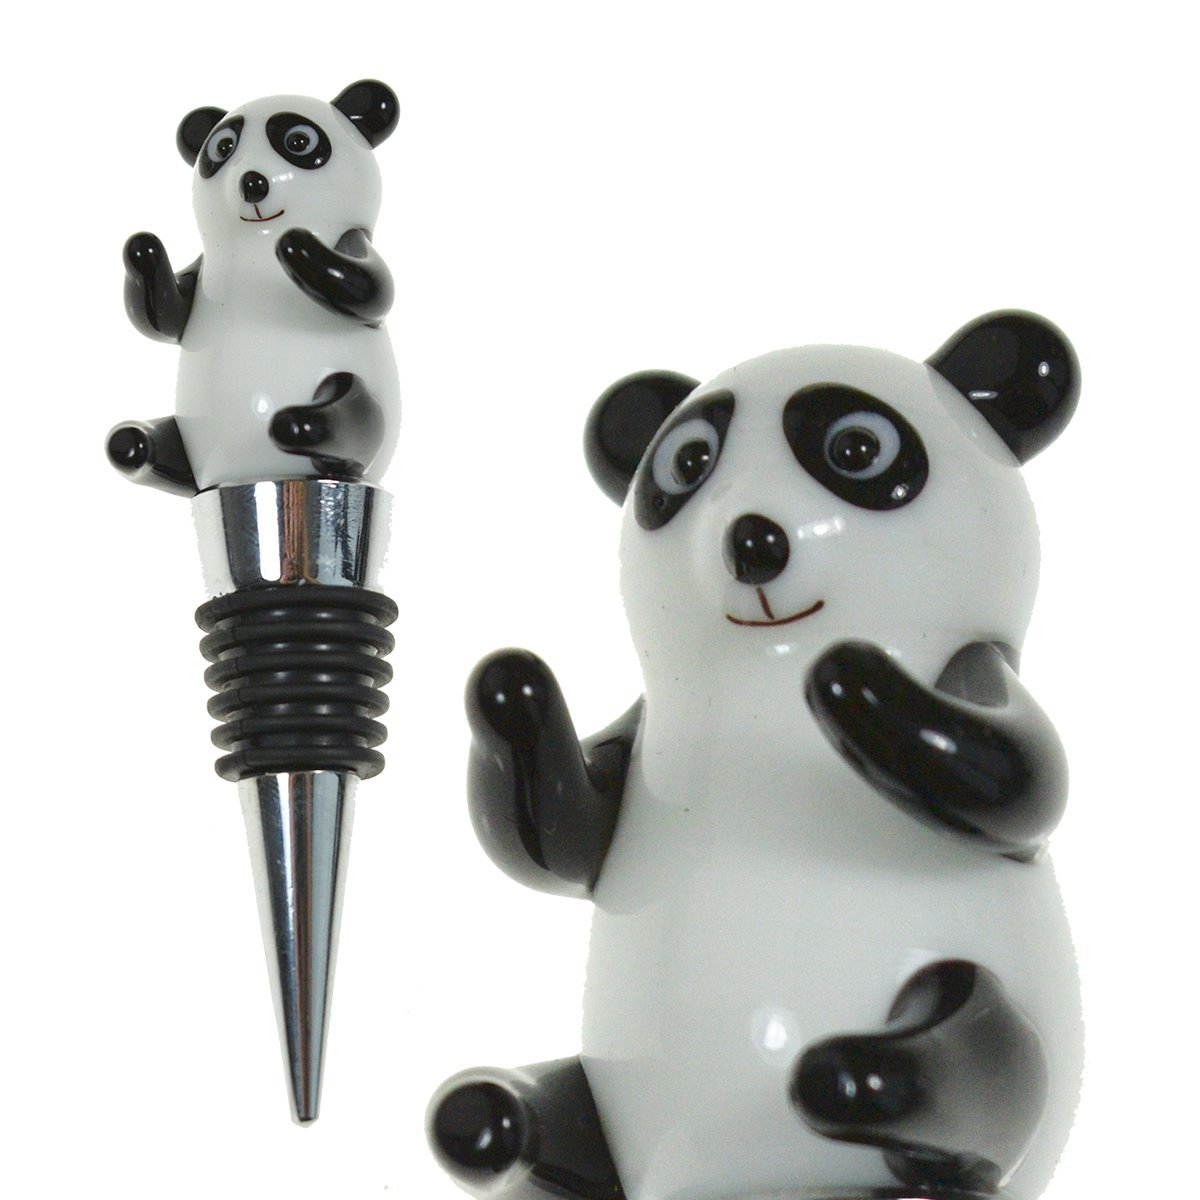 Glass Panda Wine Bottle Stopper (20+ Designs to Choose From) - Colorful, Unique, Handmade, Eye-Catching Decorative Glass Wine Bottle Stopper … (Panda)